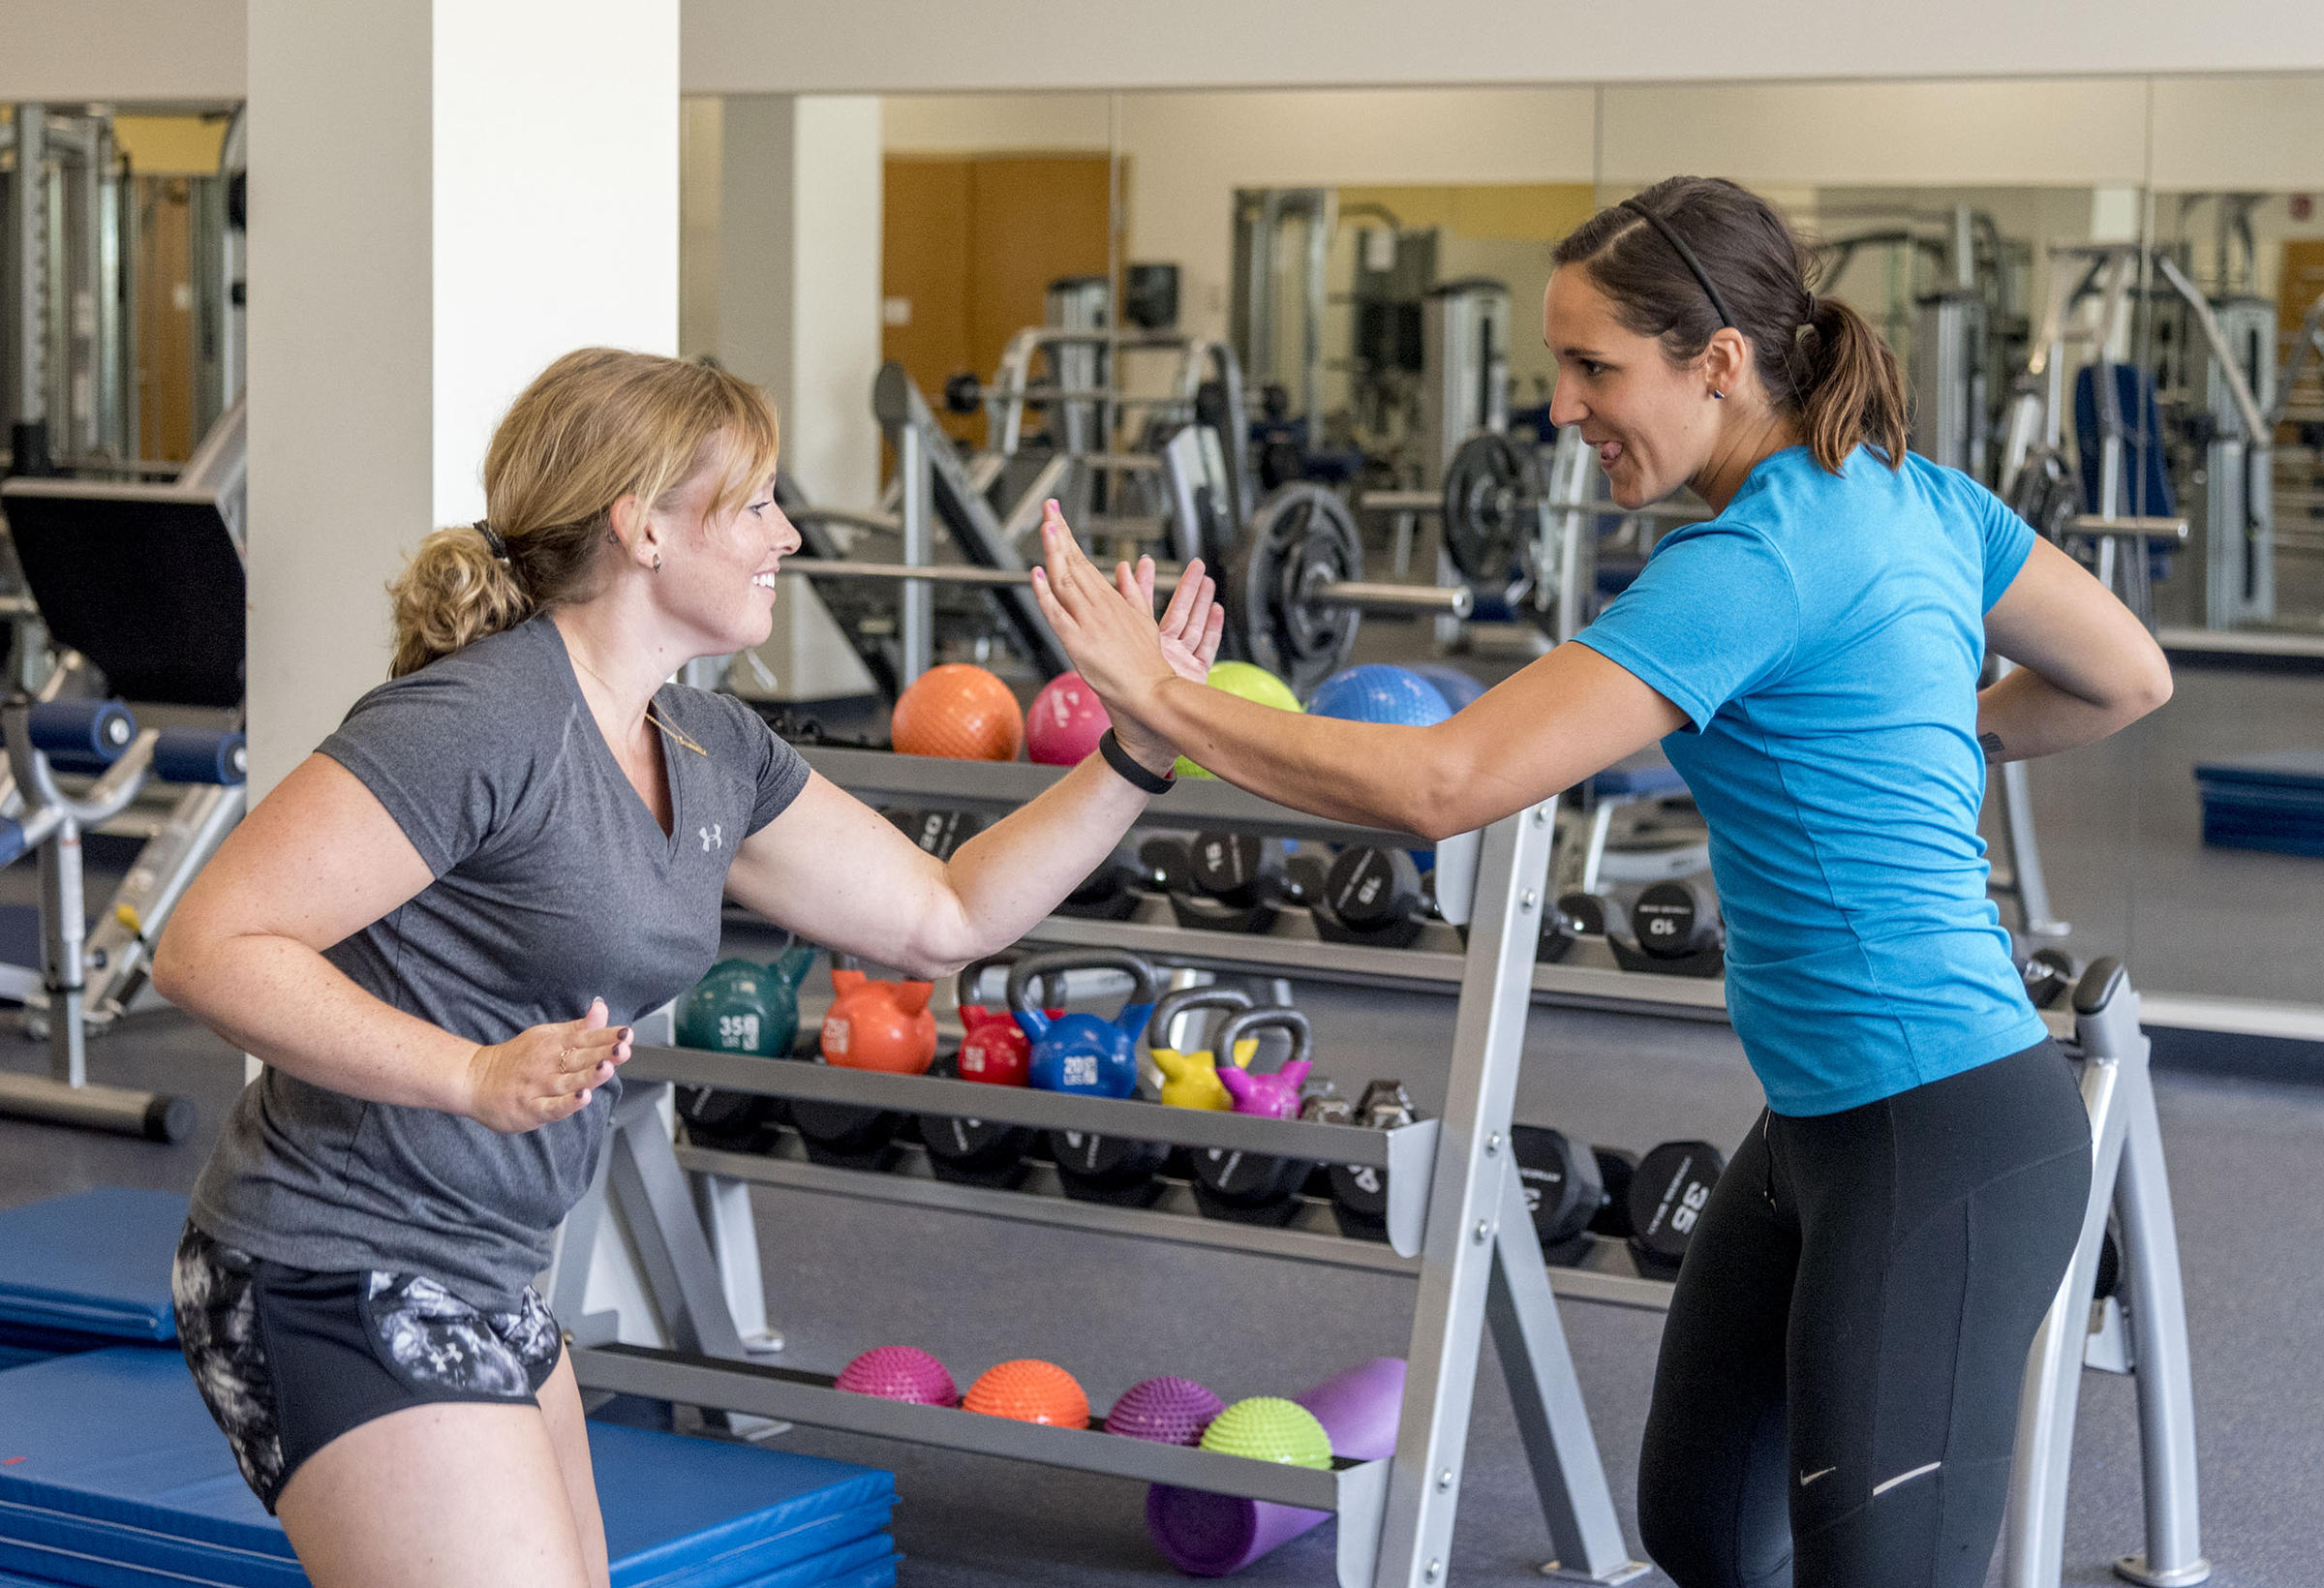 physical activity and academic performance Study skills: making time for exercise might help  physical activity and academic performance  making time for exercise might help your academic performance.